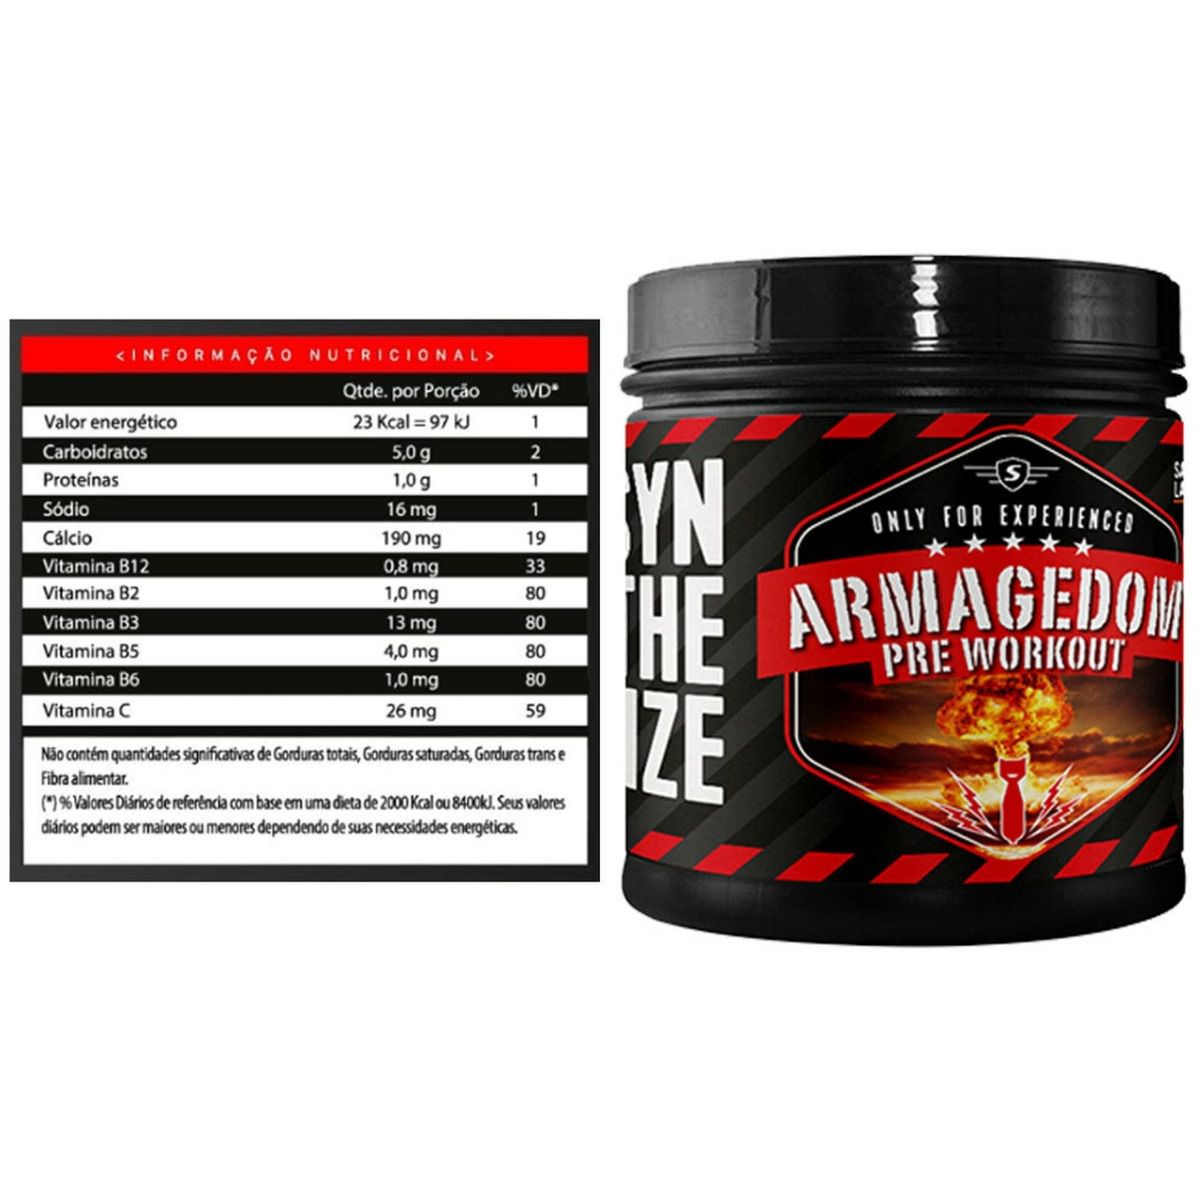 Armagedom Pre Workout SyntheSize - 200g